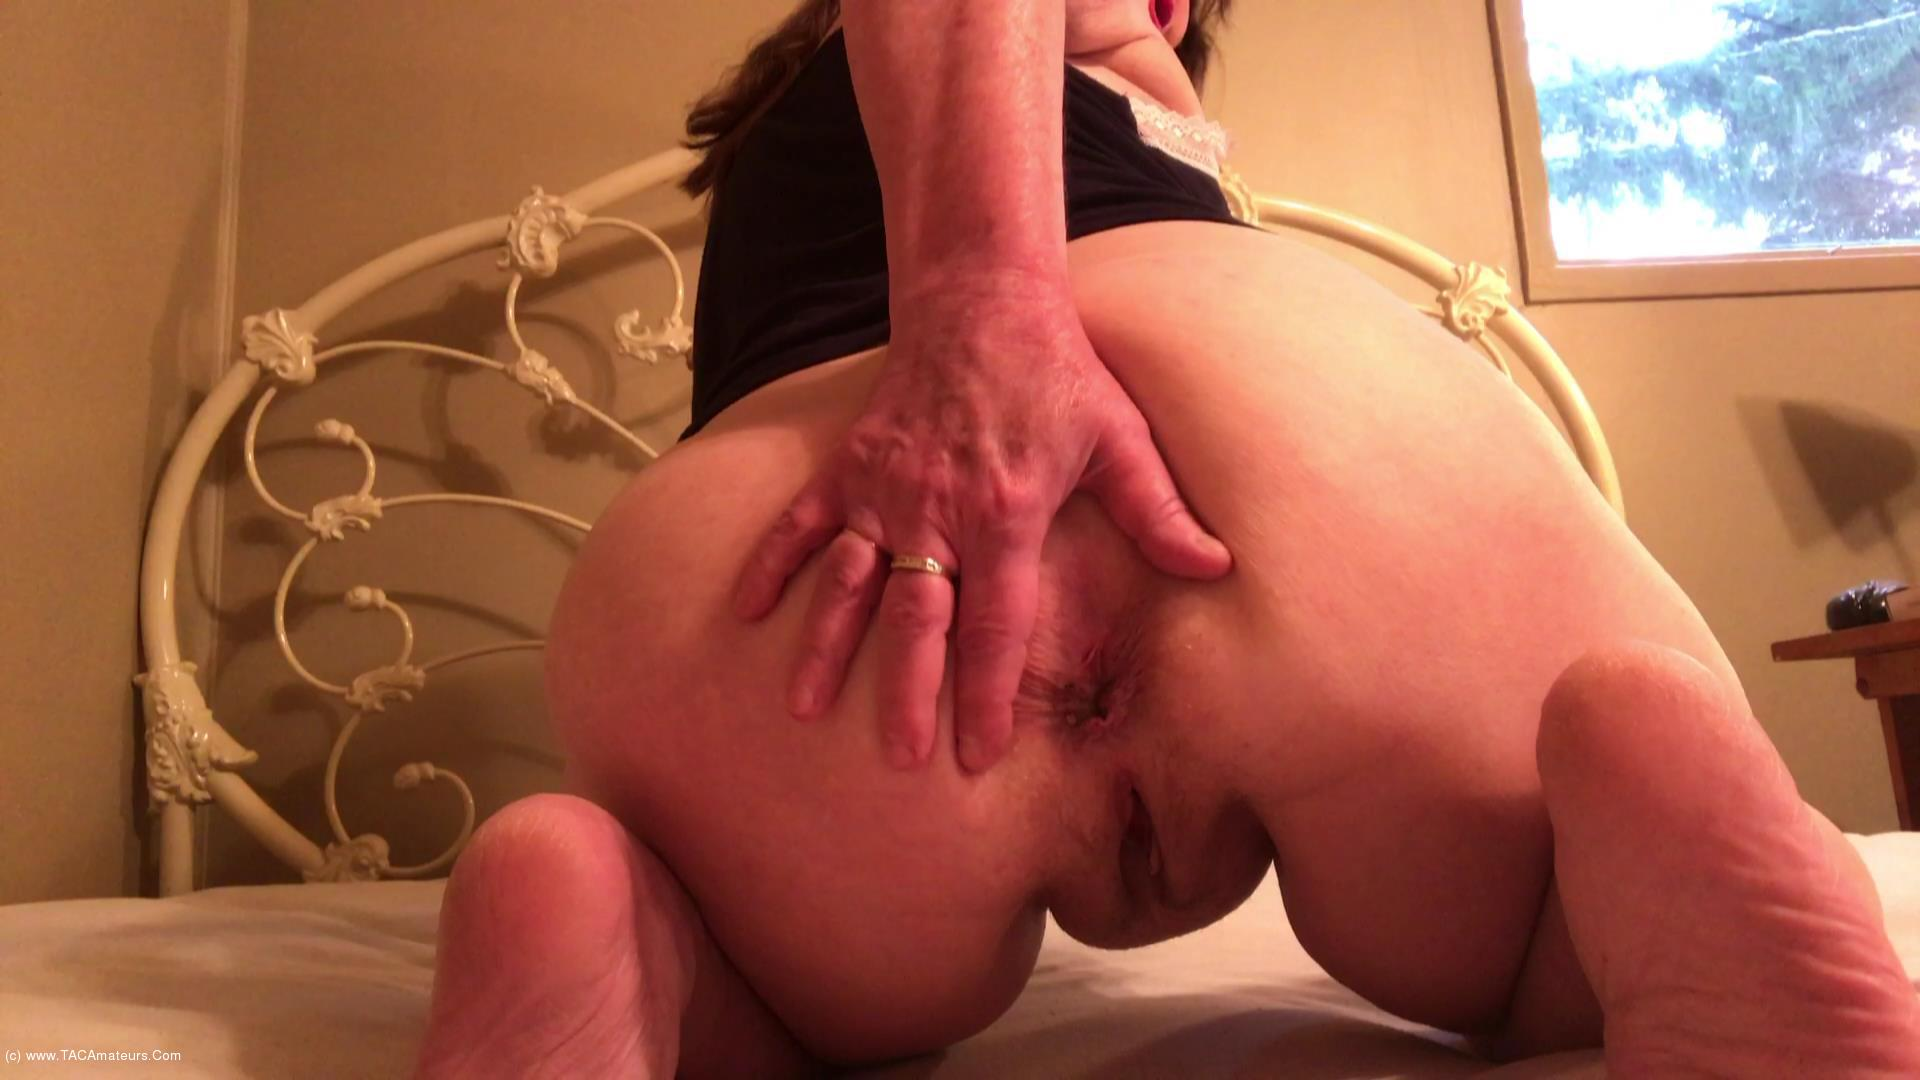 CougarBabeJolee - My Arse Needs Worshipping scene 0